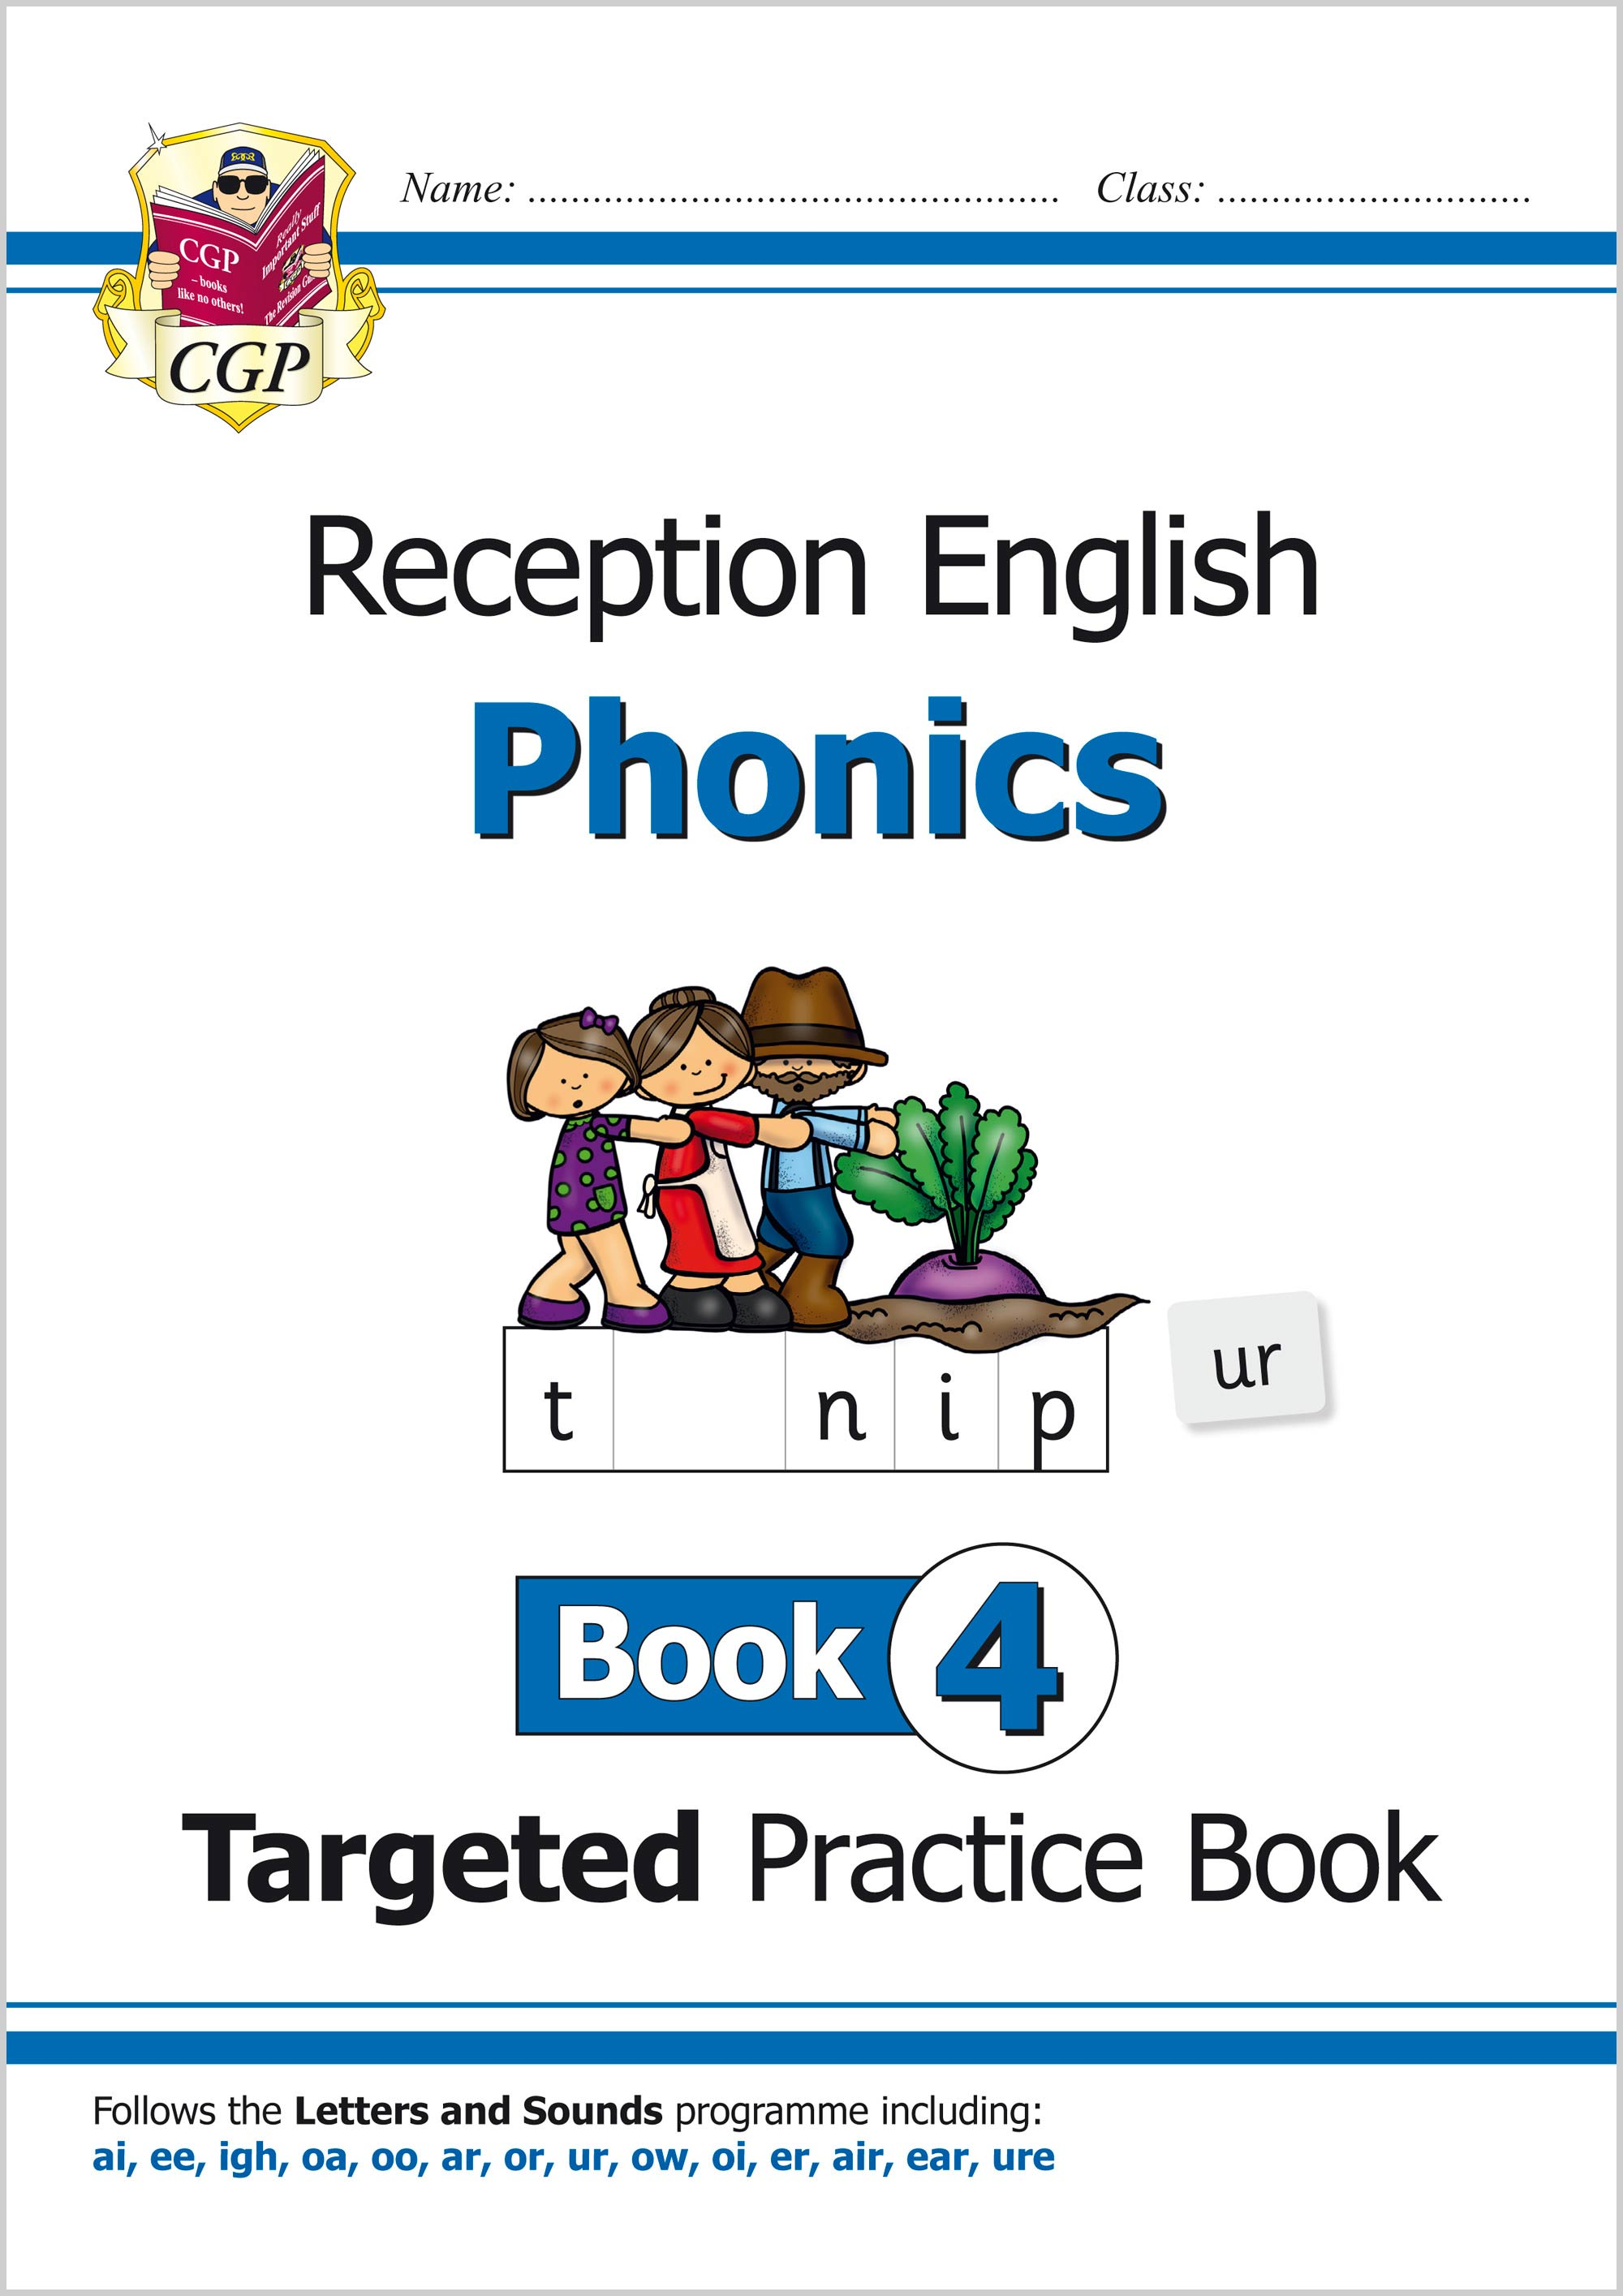 EROW411 - English Targeted Practice Book: Phonics - Reception Book 4